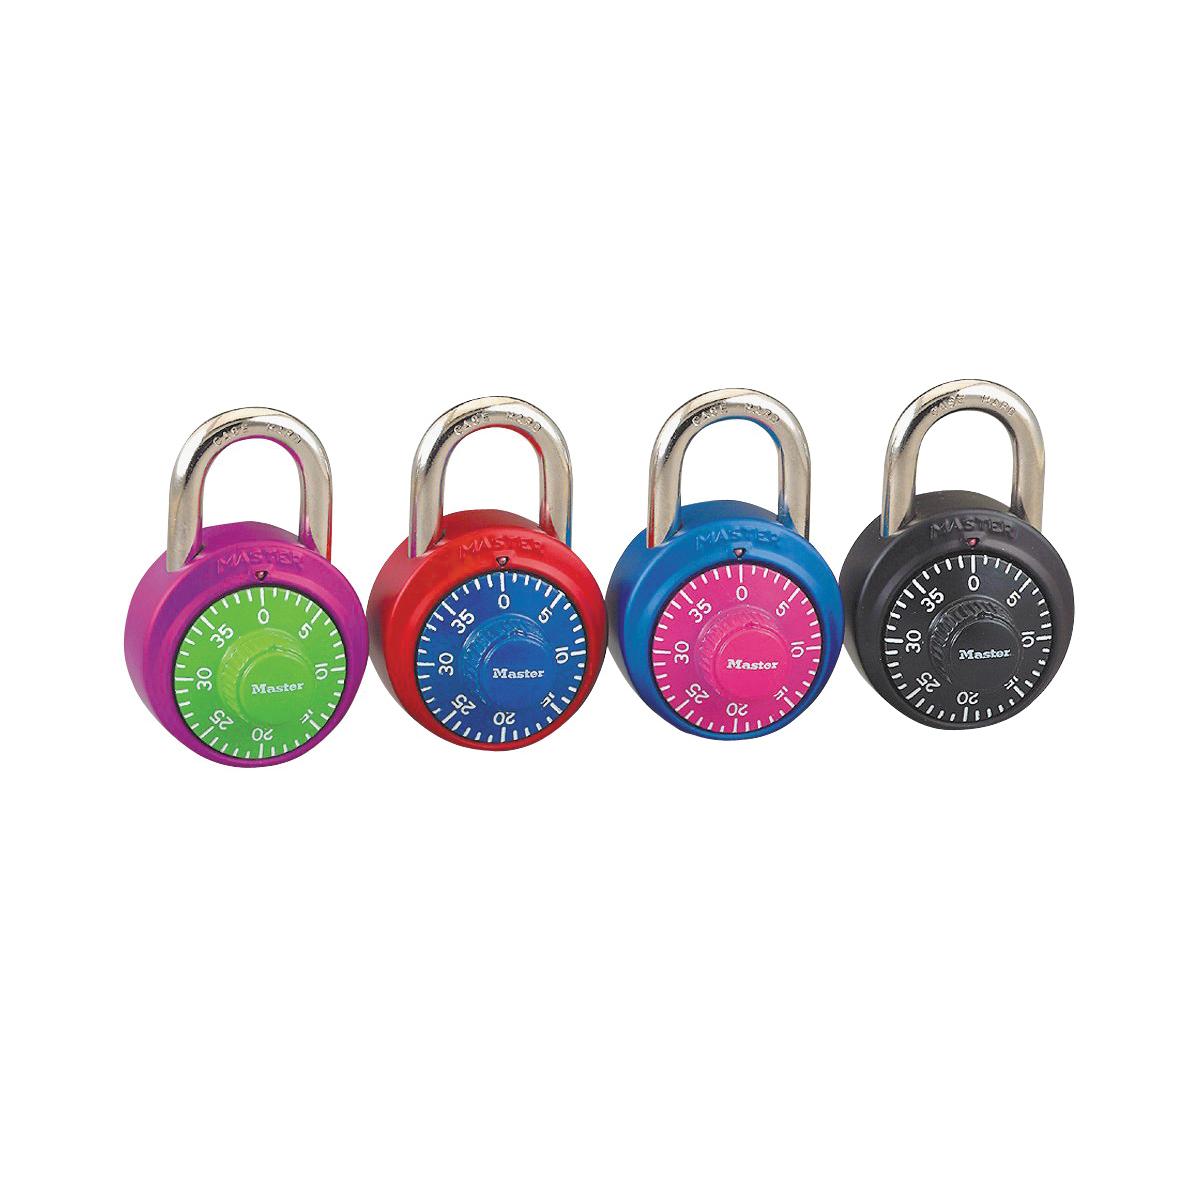 Picture of Master Lock 1530DCM Combination Dial Padlock, 9/32 in Dia Shackle, 3/4 in H Shackle, Steel Shackle, Steel Body